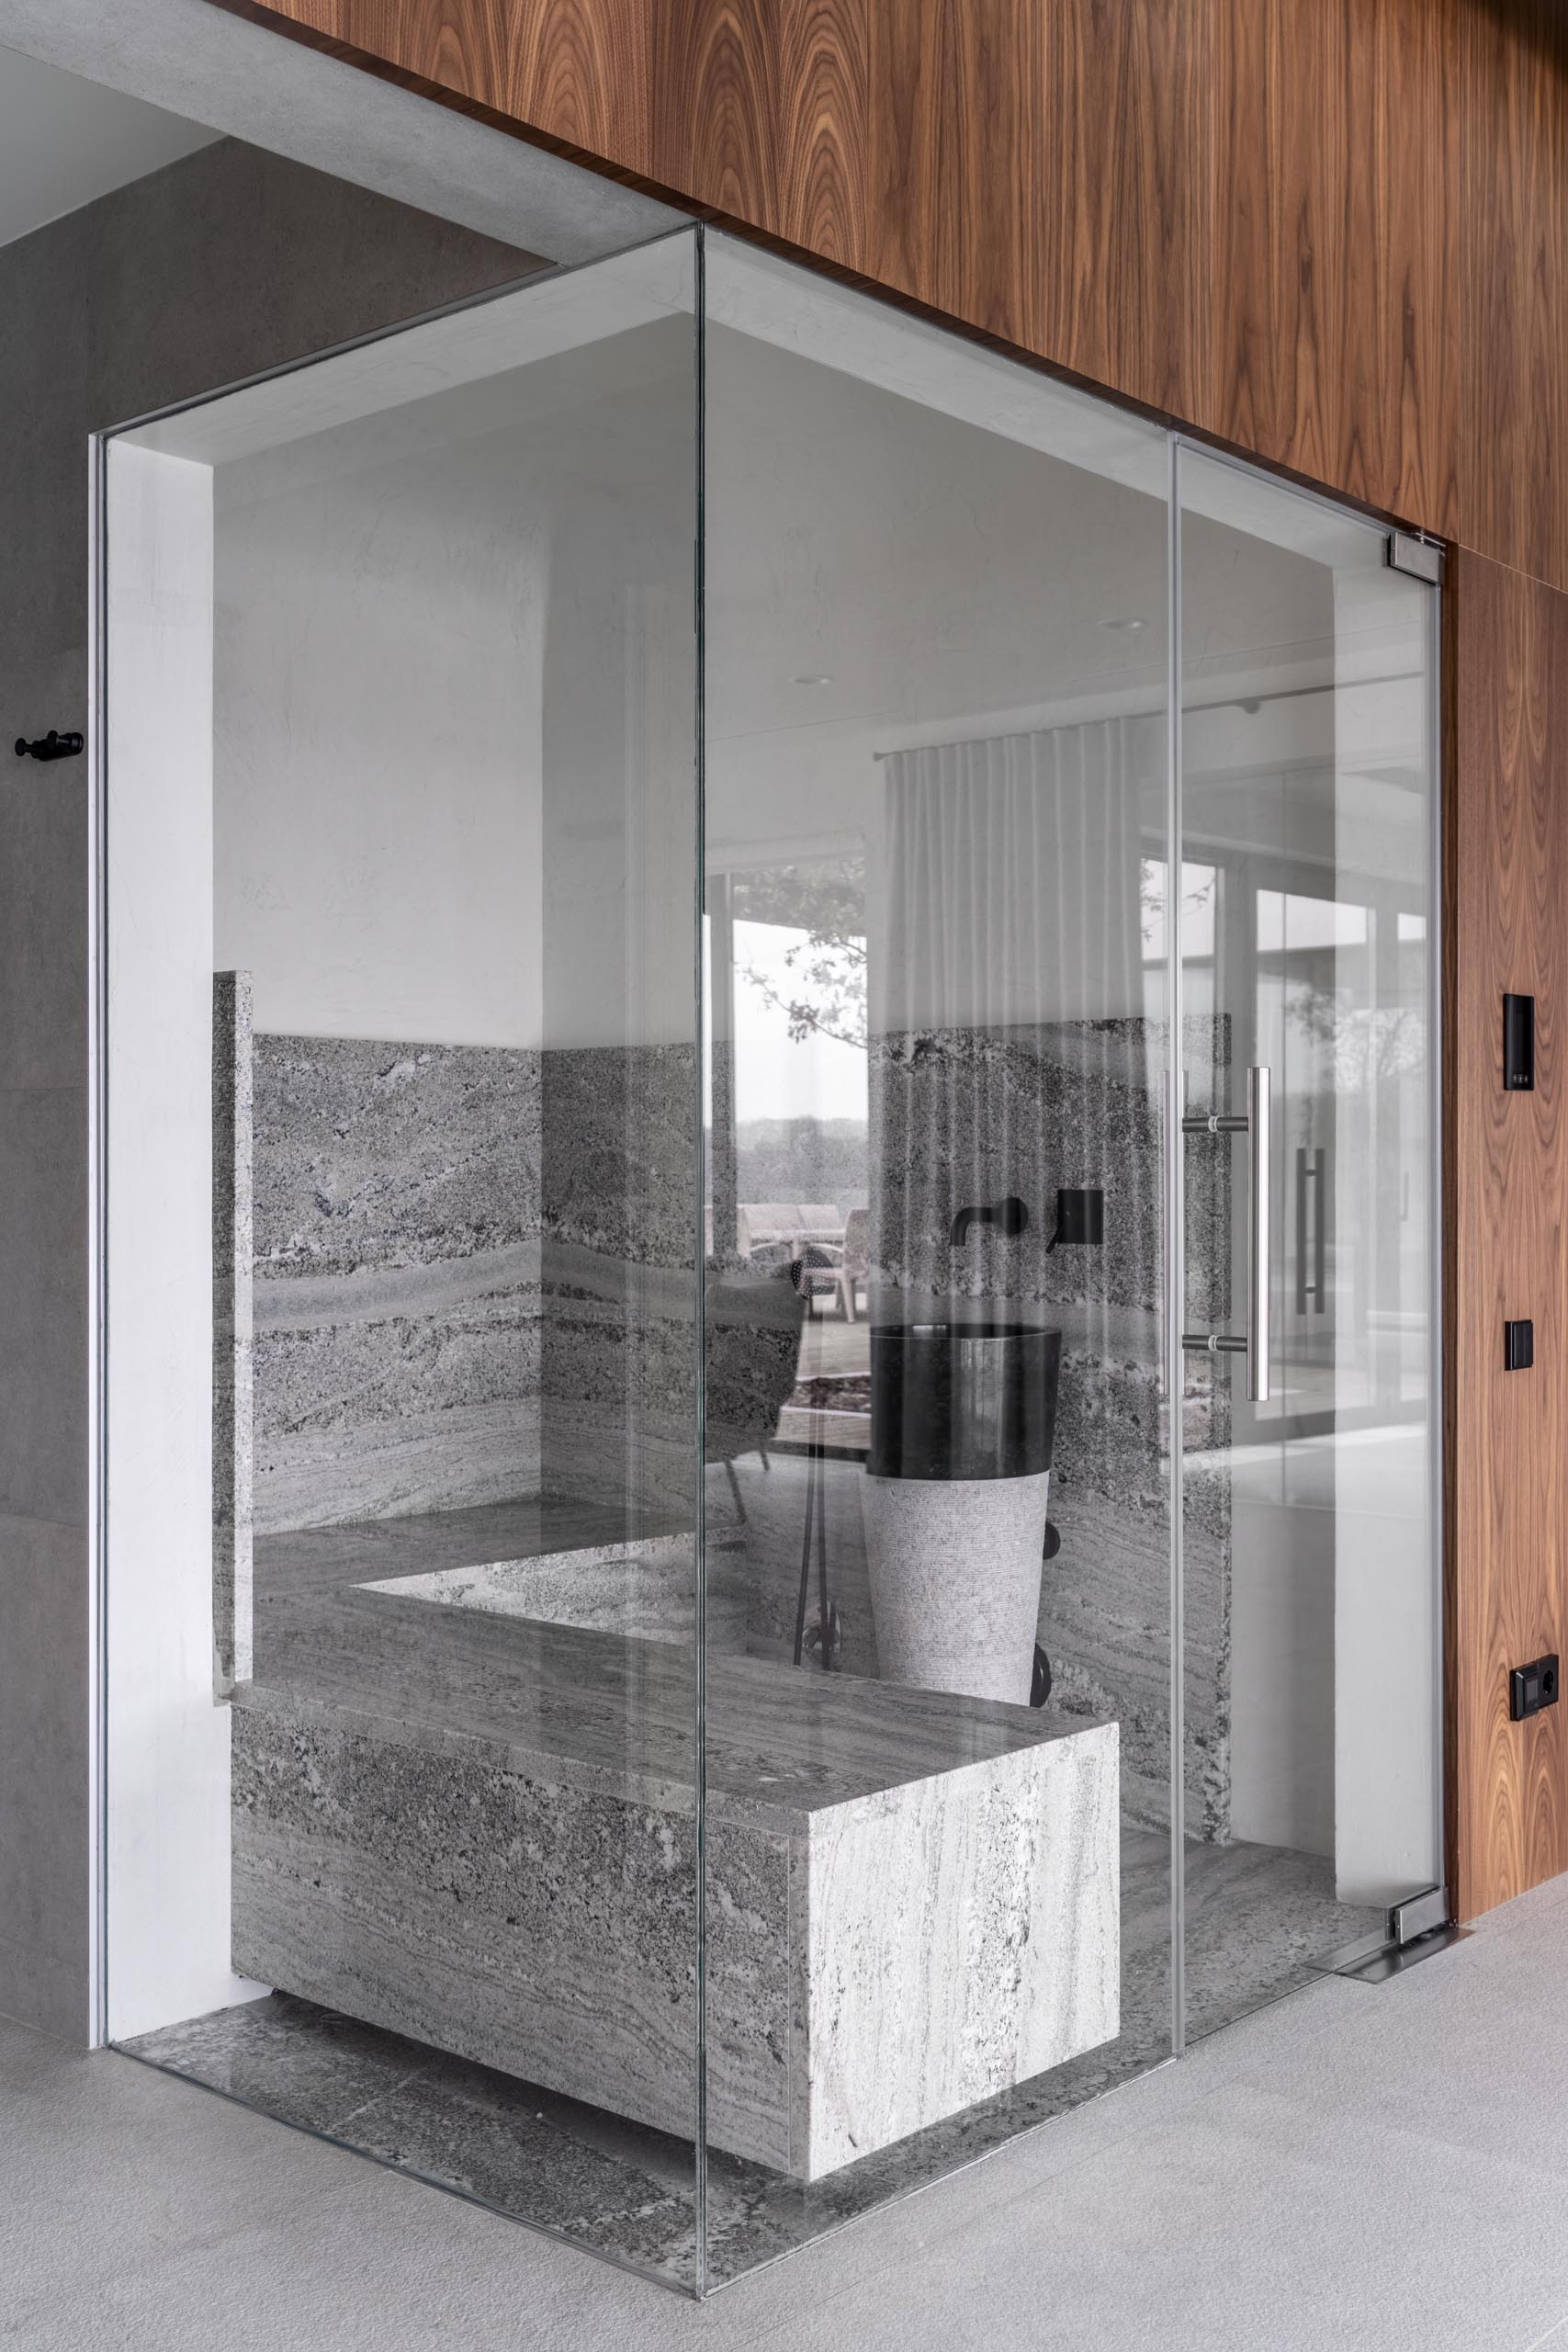 A sauna with glass walls, gray stone, and black accents.